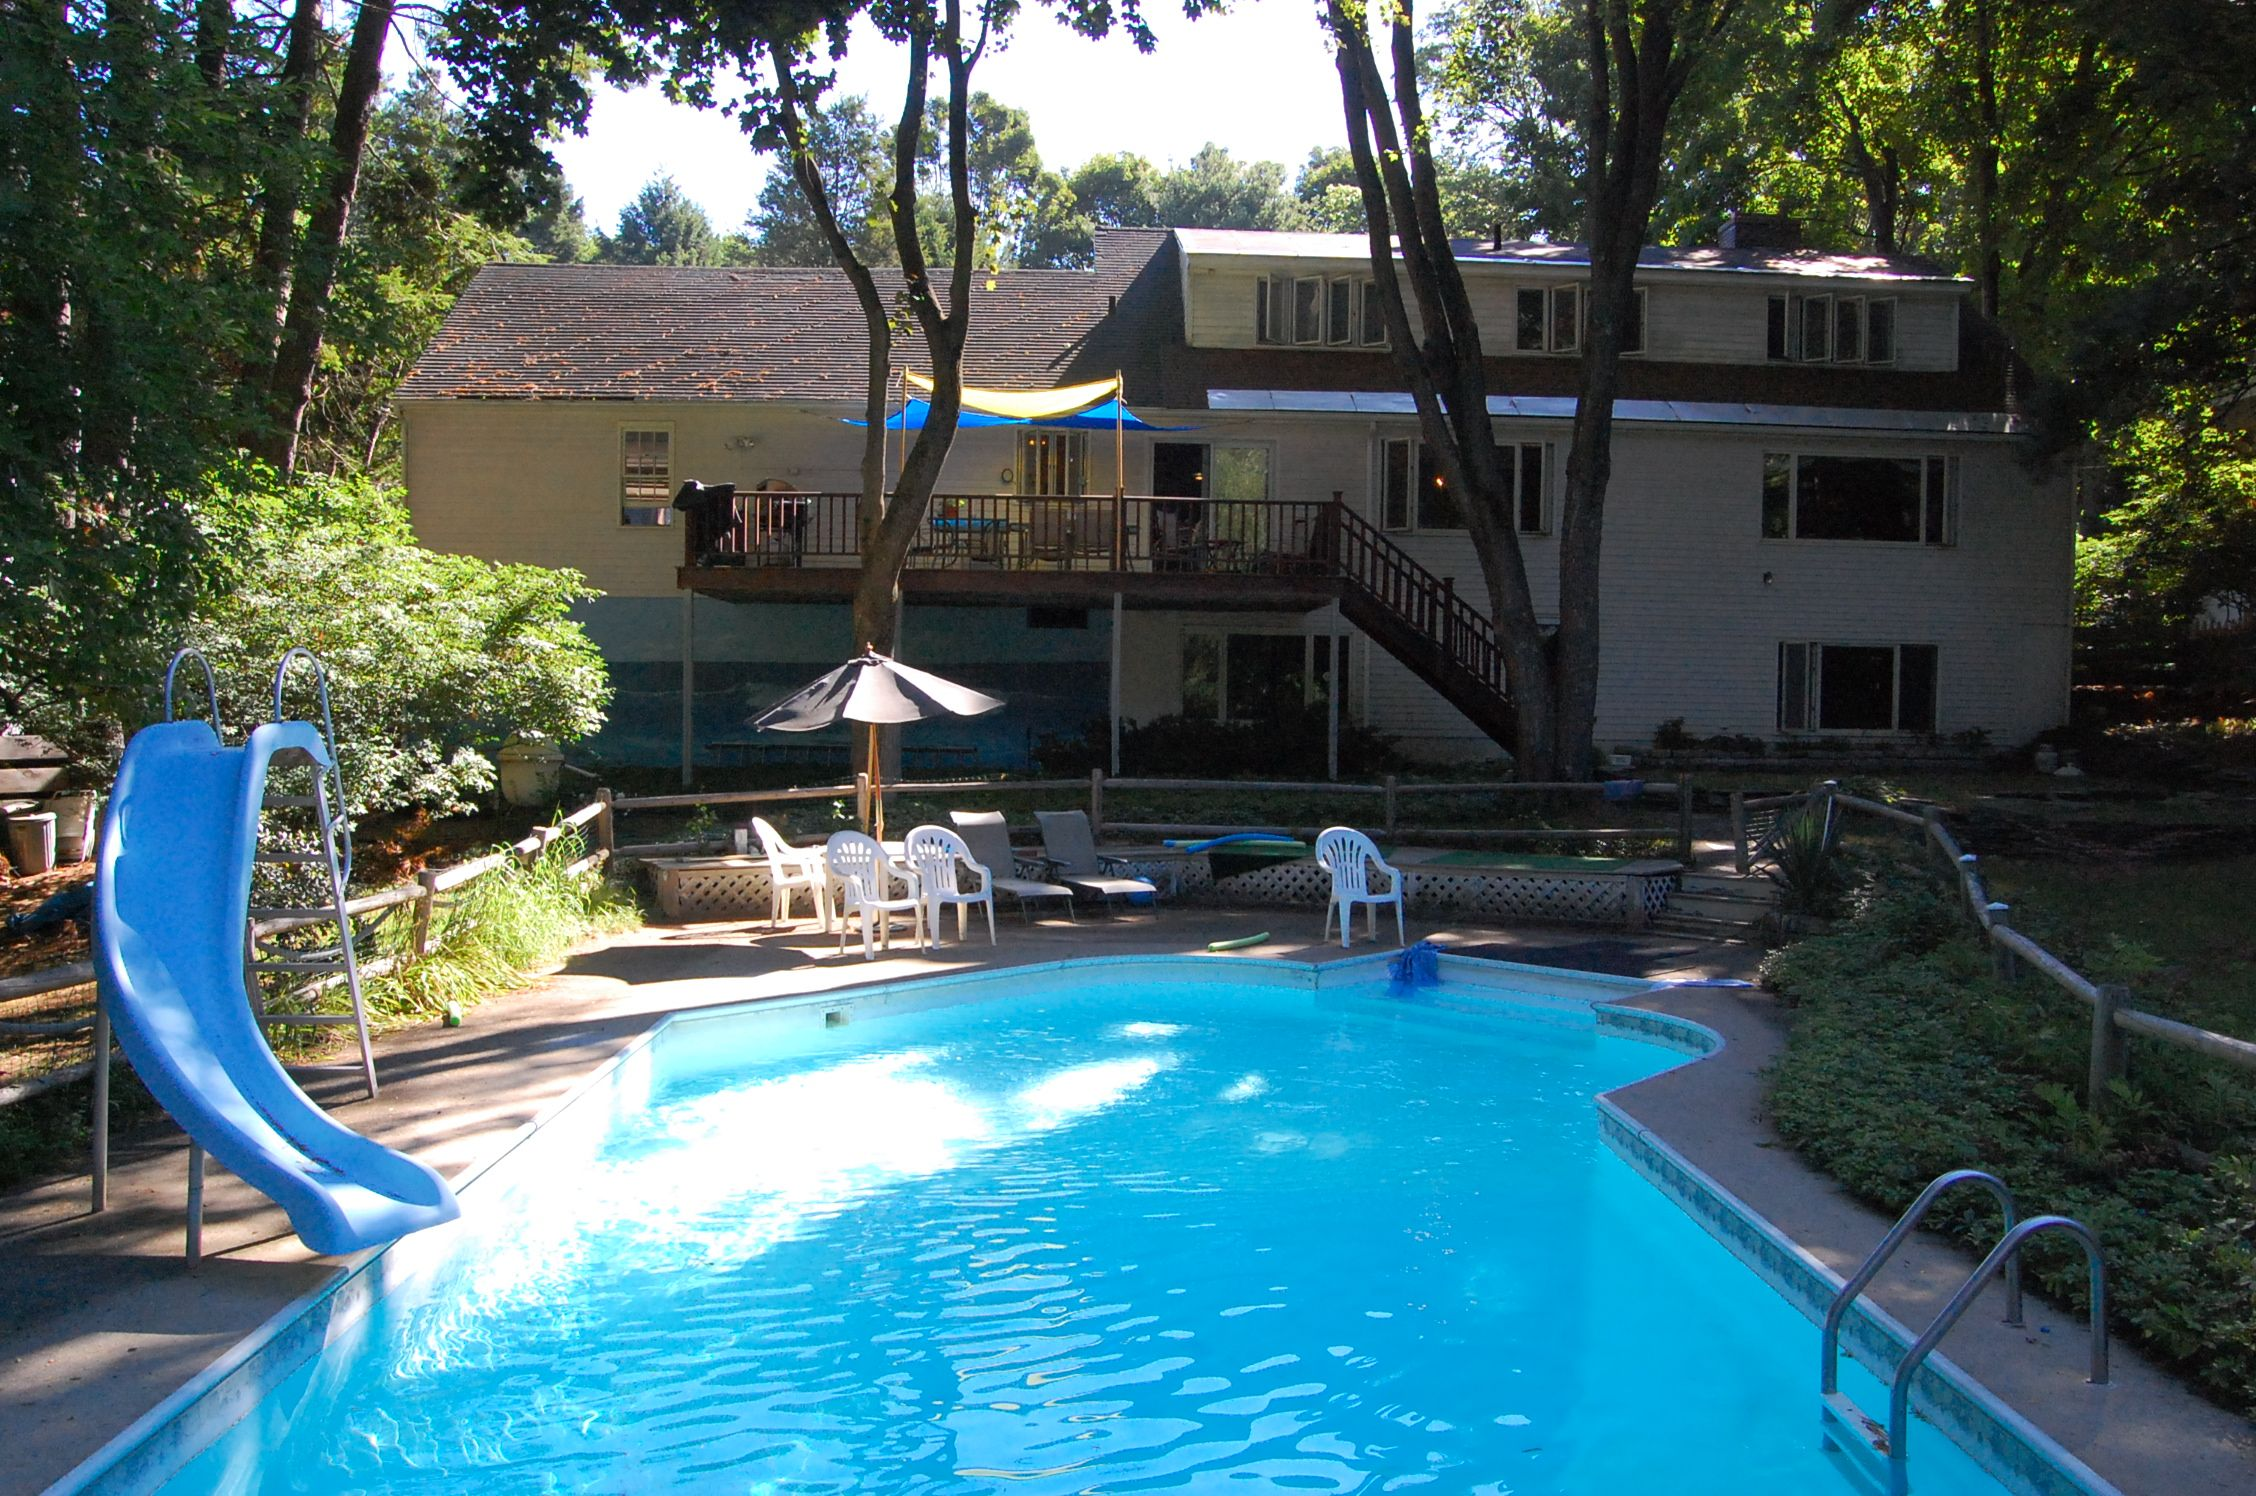 Northern virginia home sellers be wary of these home for Pool design northern virginia